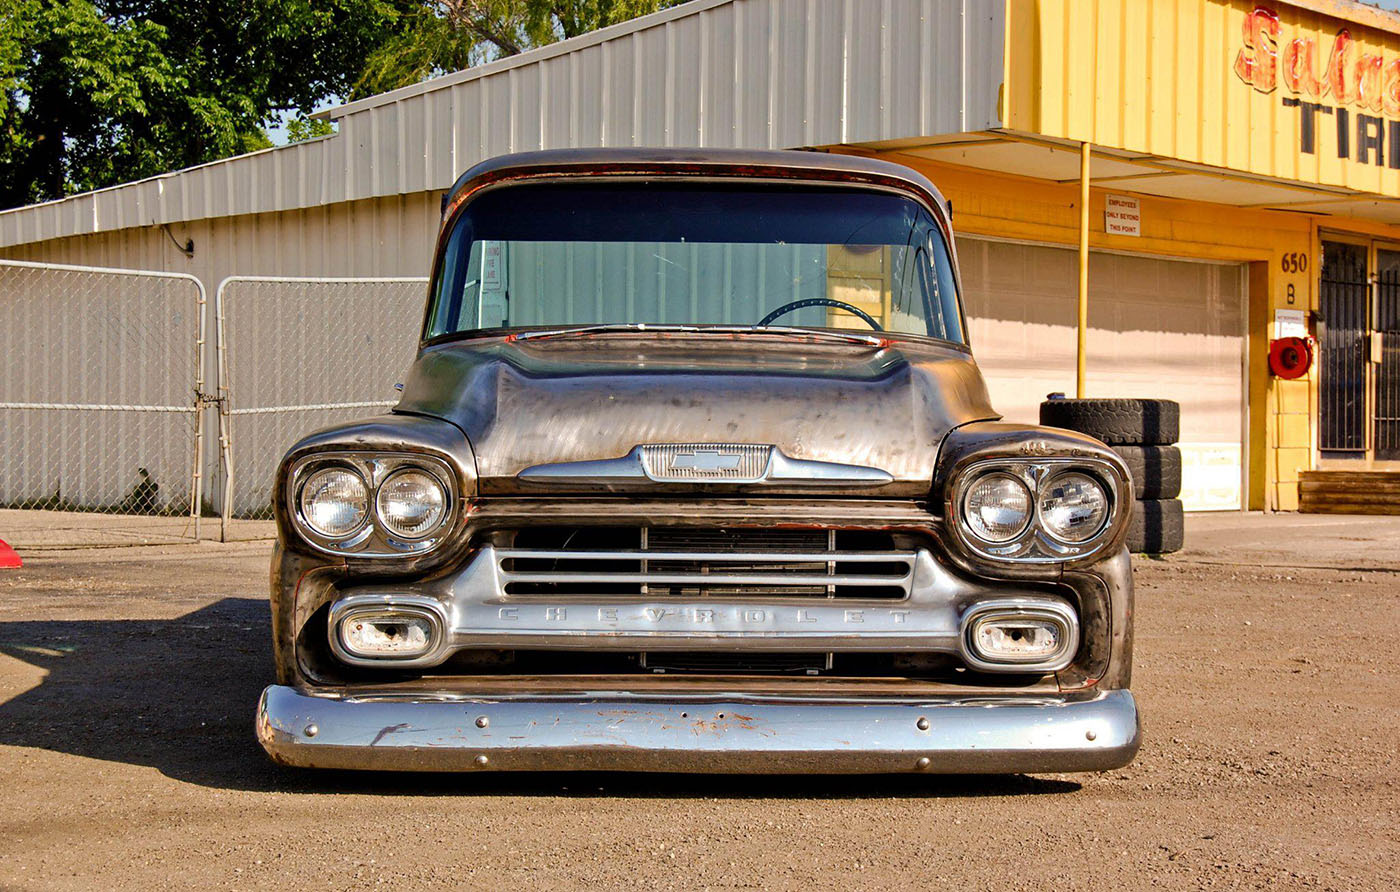 56 chevy wiring harness 1958    chevy    truck with a twin turbo ls1     engine swap depot  1958    chevy    truck with a twin turbo ls1     engine swap depot